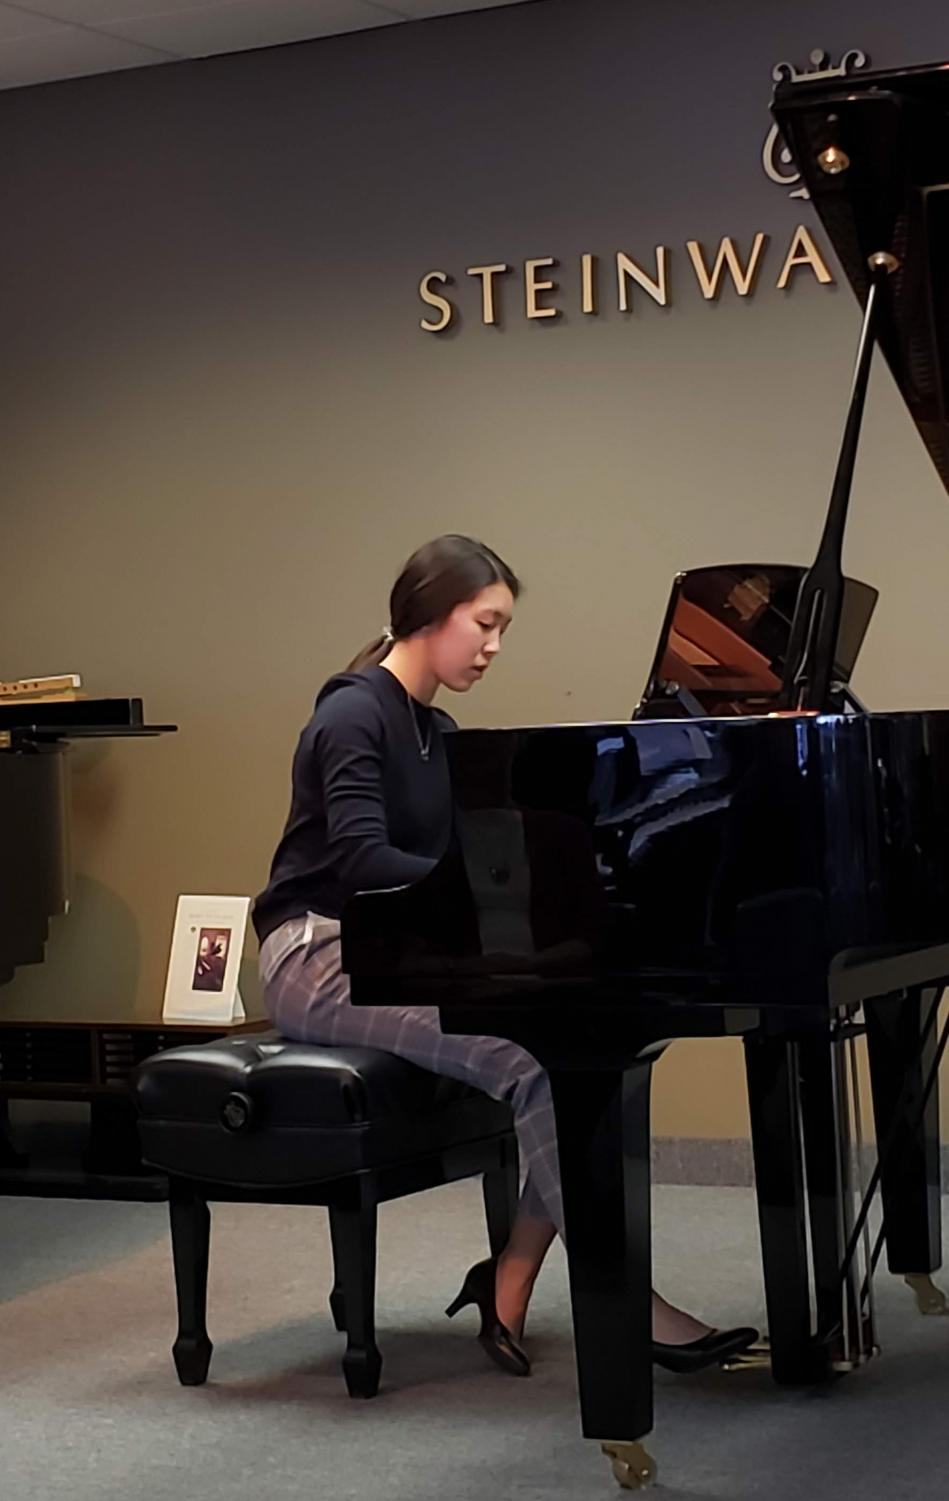 Christina Li playing the piano at a preparatory recital for a competition.